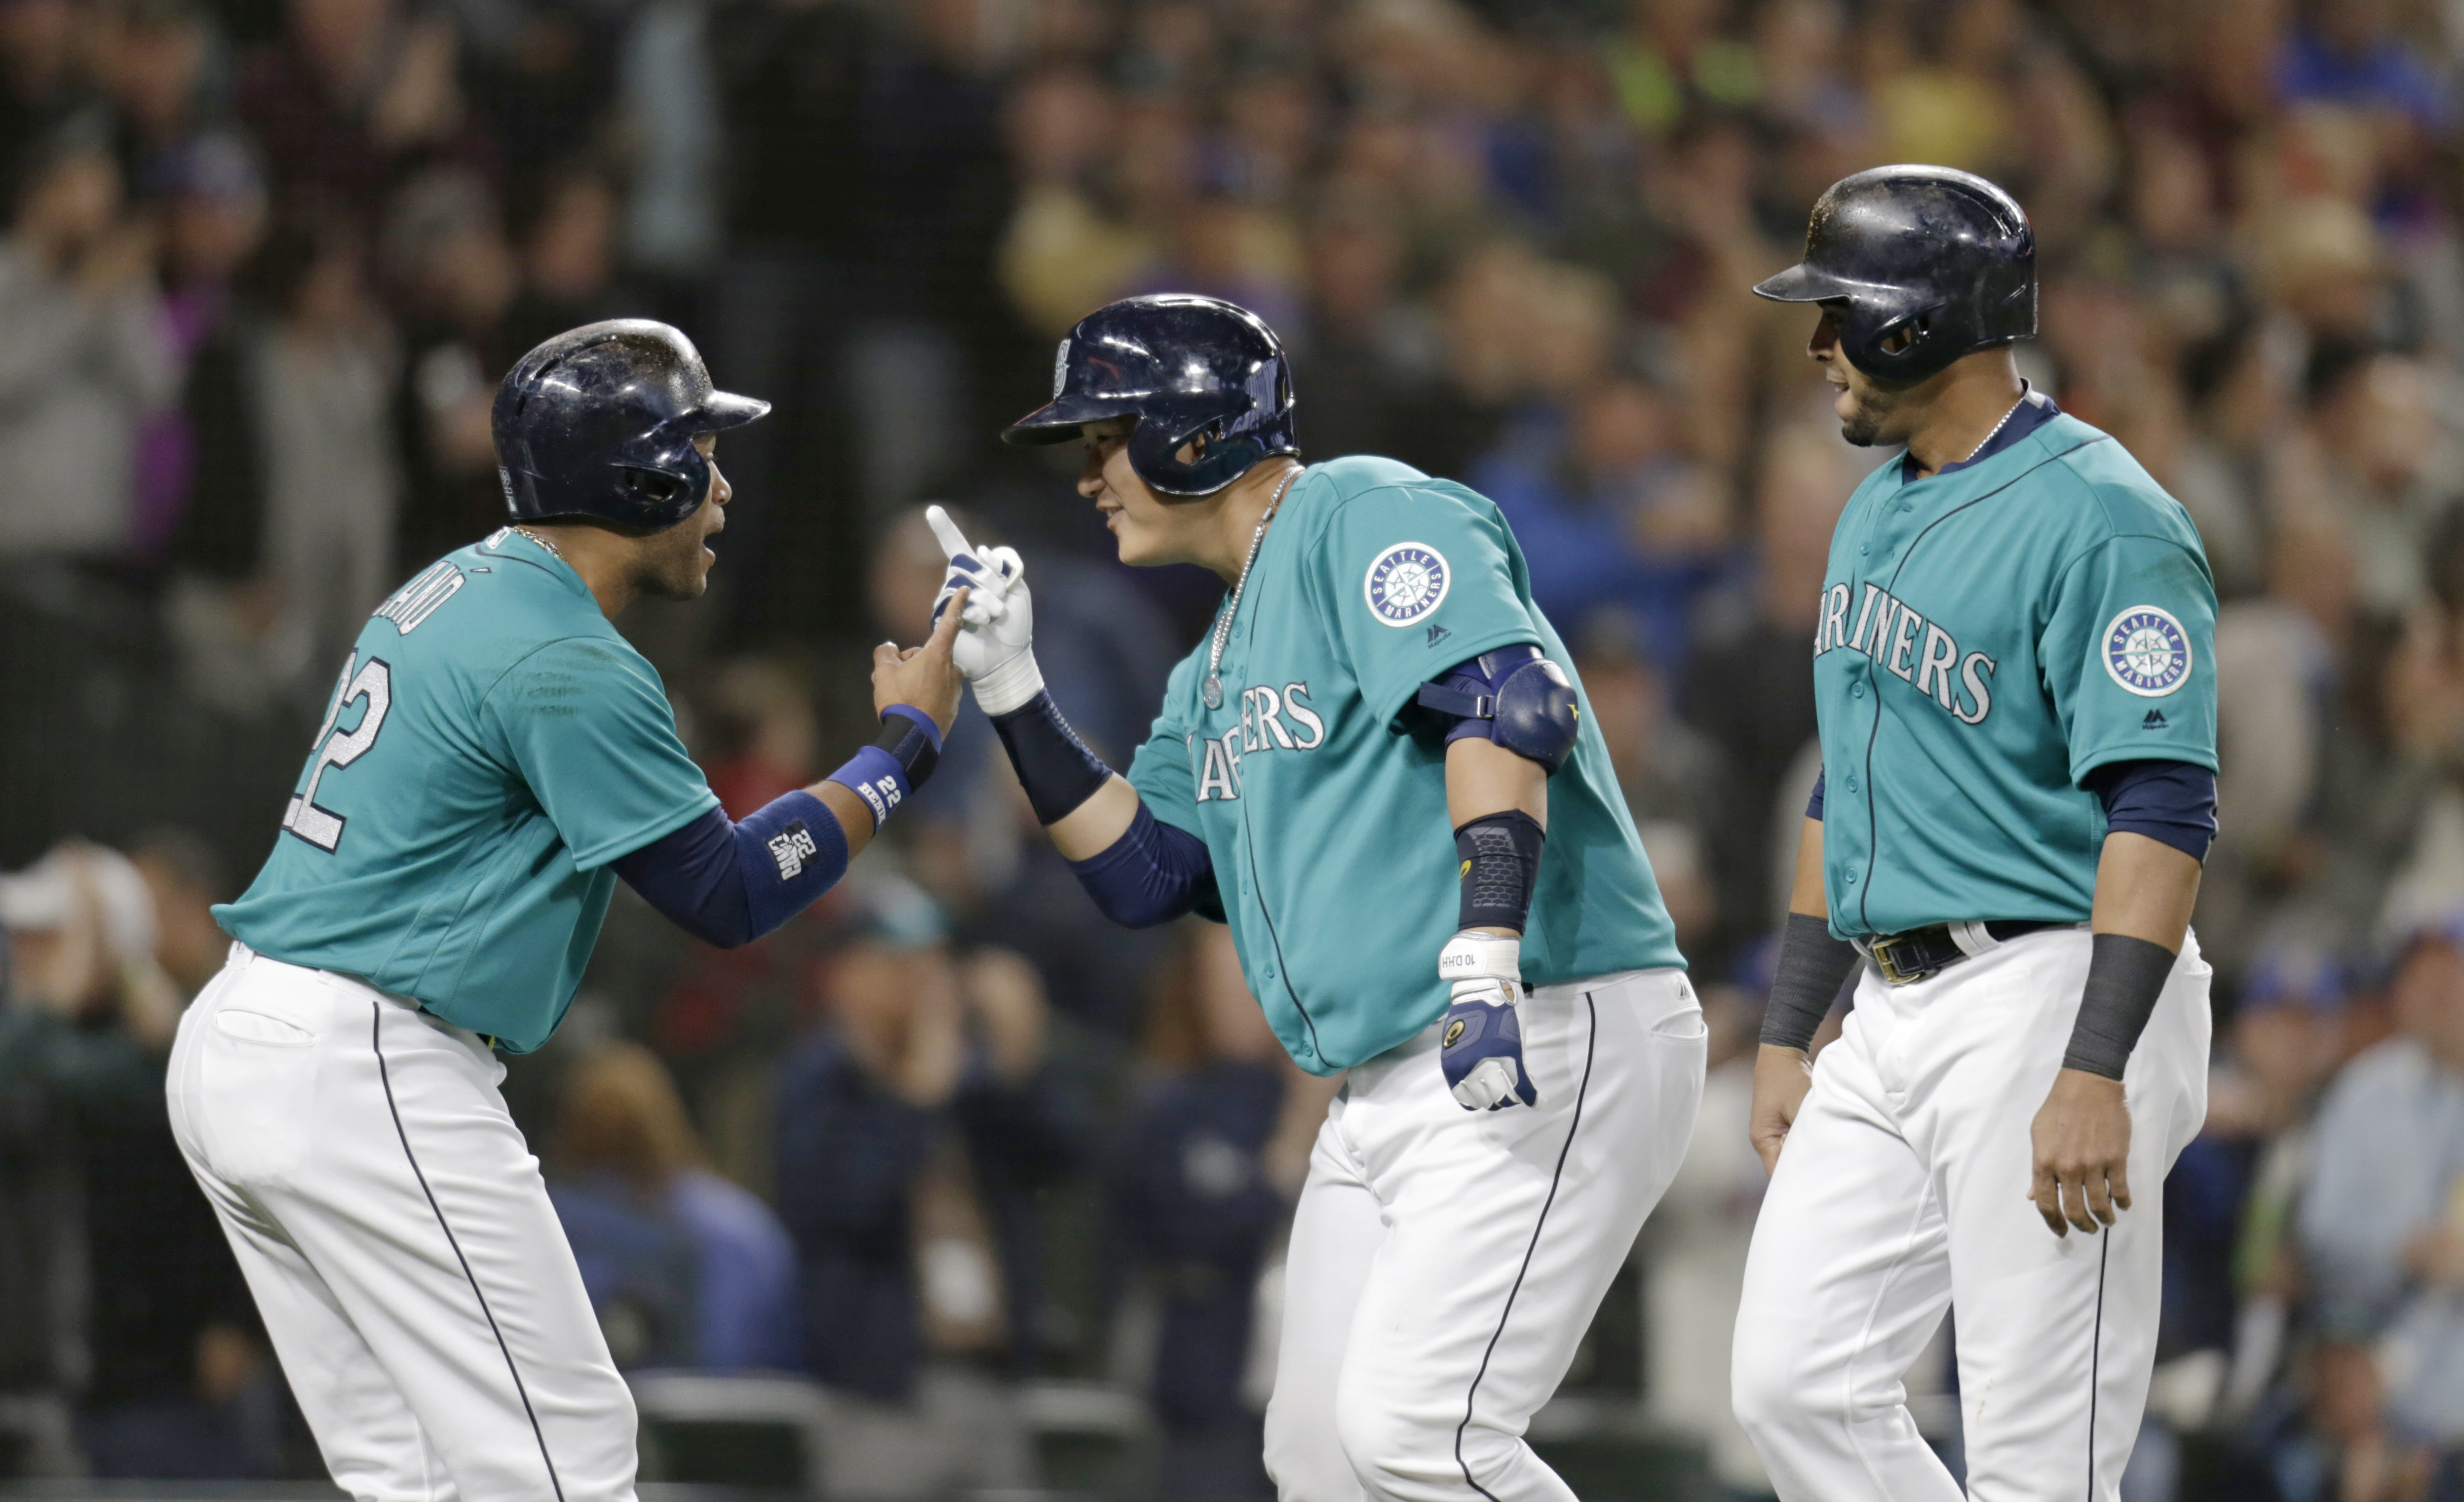 Seattle Mariners' Dae-Ho Lee, center, celebrates with Robinson Cano, left and Nelson Cruz, right, after hitting a three-run home run off Texas Rangers' Derek Holland during fourth inning of a baseball game Friday, June 10, 2016, in Seattle. (AP Photo/John